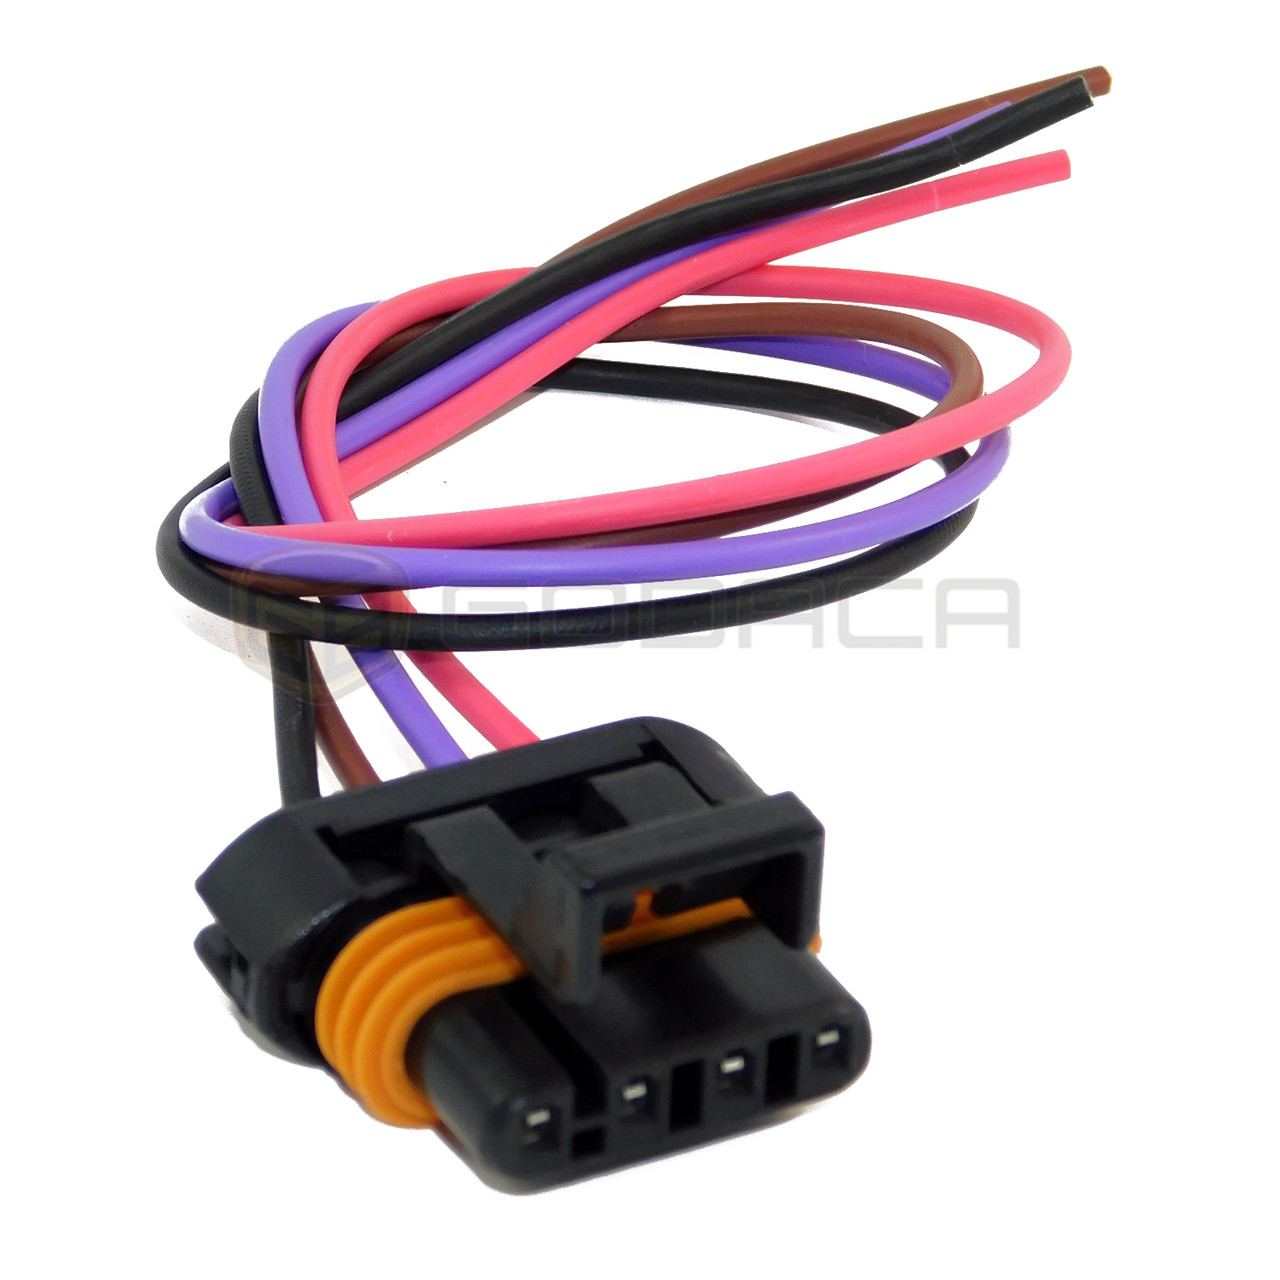 small resolution of  1 x ls1 ls6 ignition coil wiring harness pigtail connector gm camaro coil wire harness on